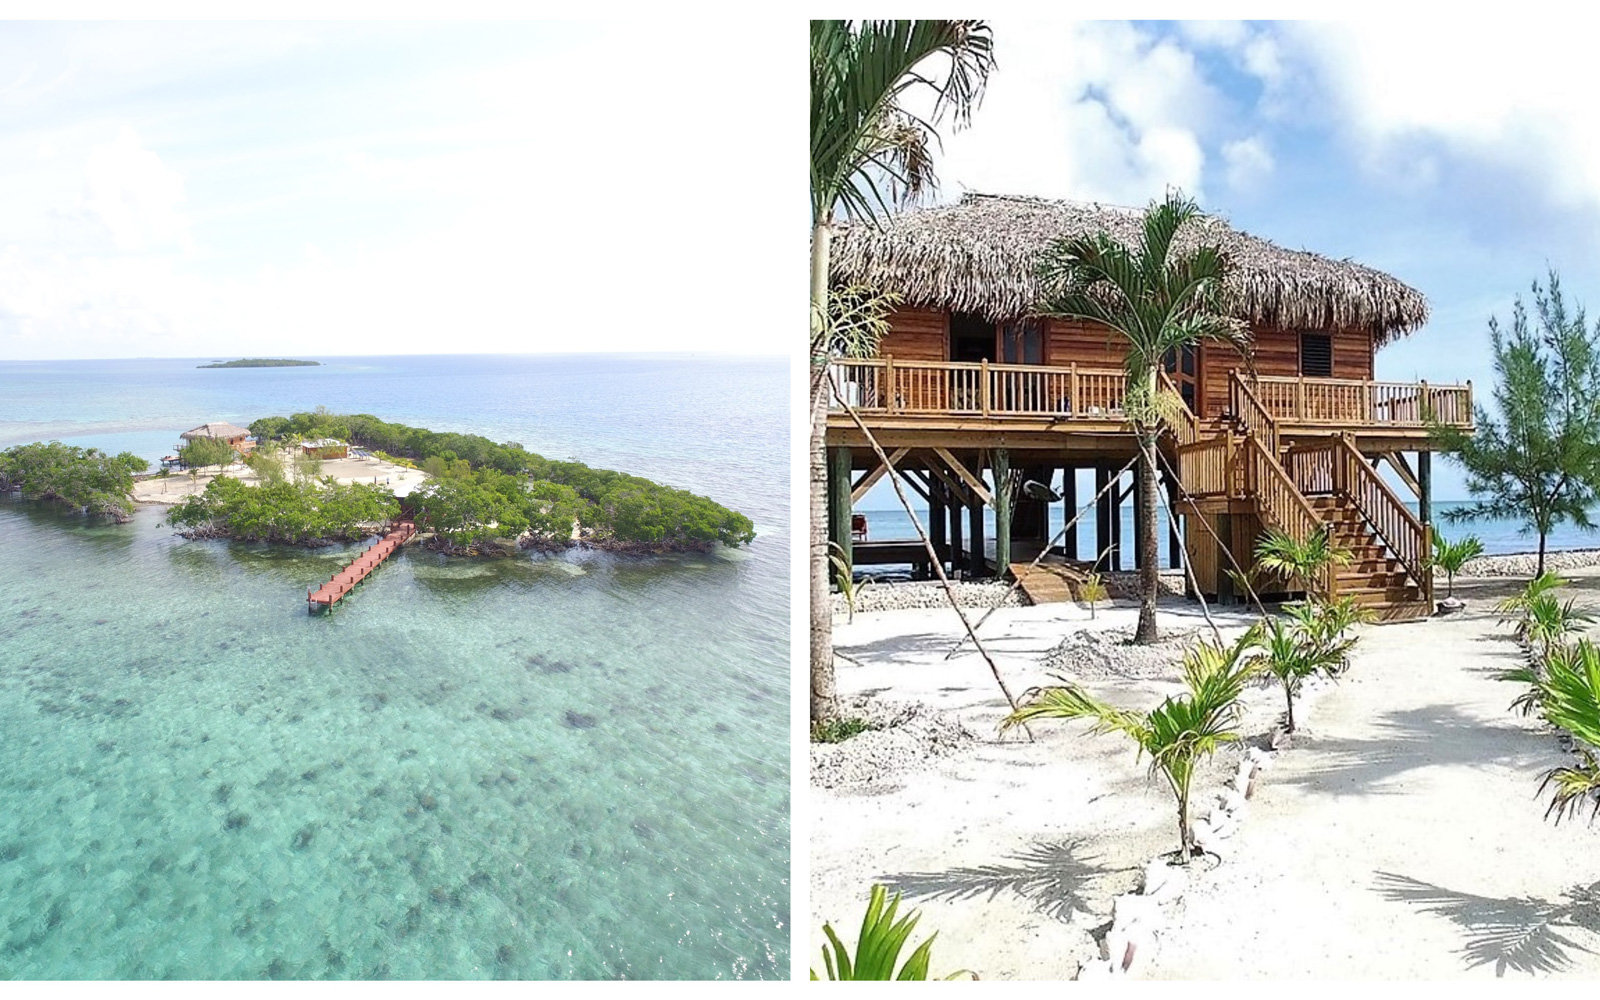 Private island with overwater bungalow